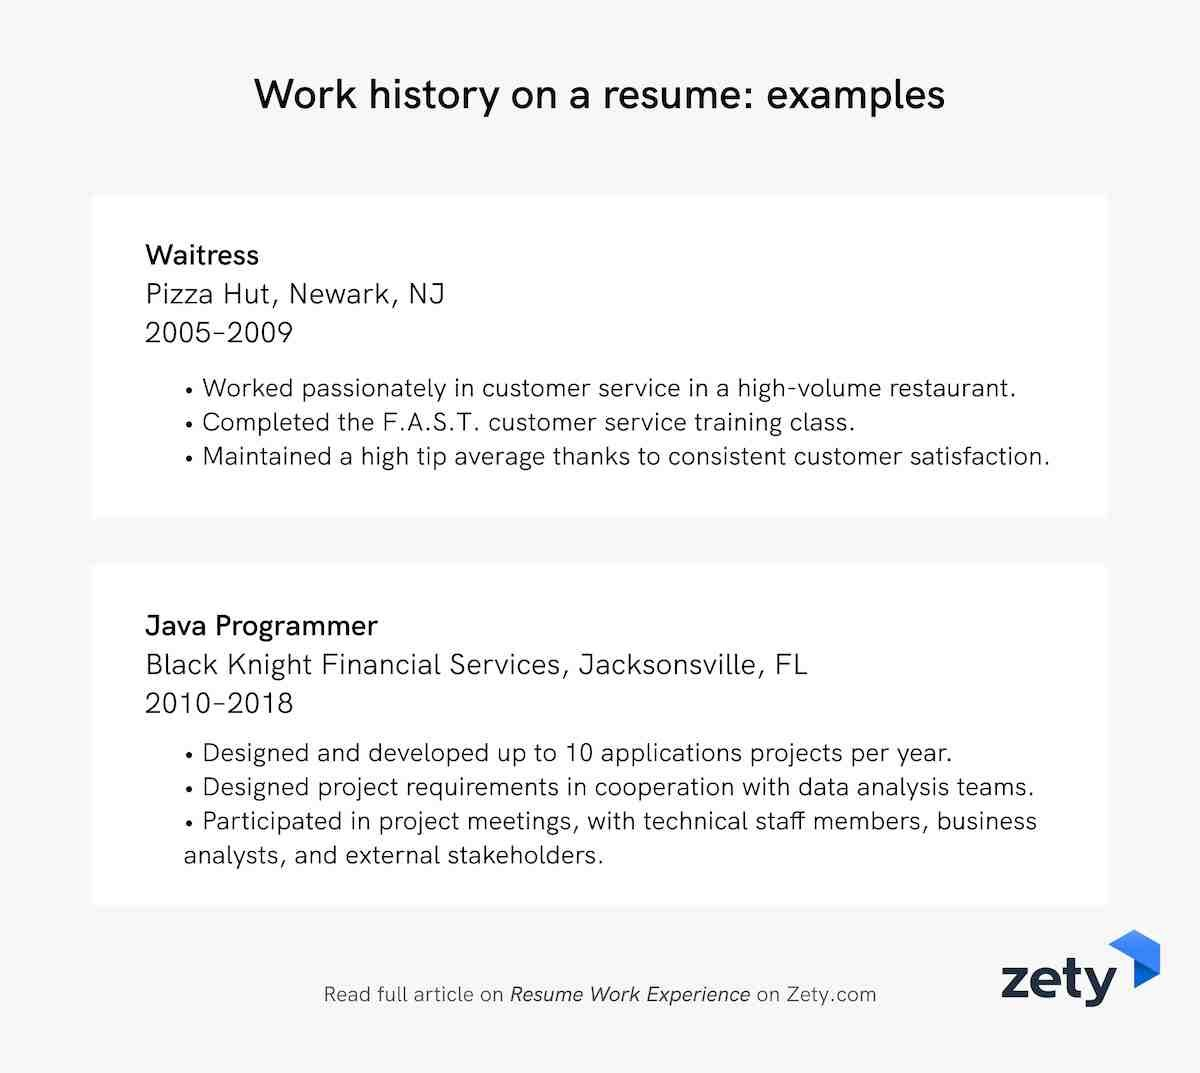 resume work experience history example job descriptions with one on examples freelance Resume Resume With One Job History